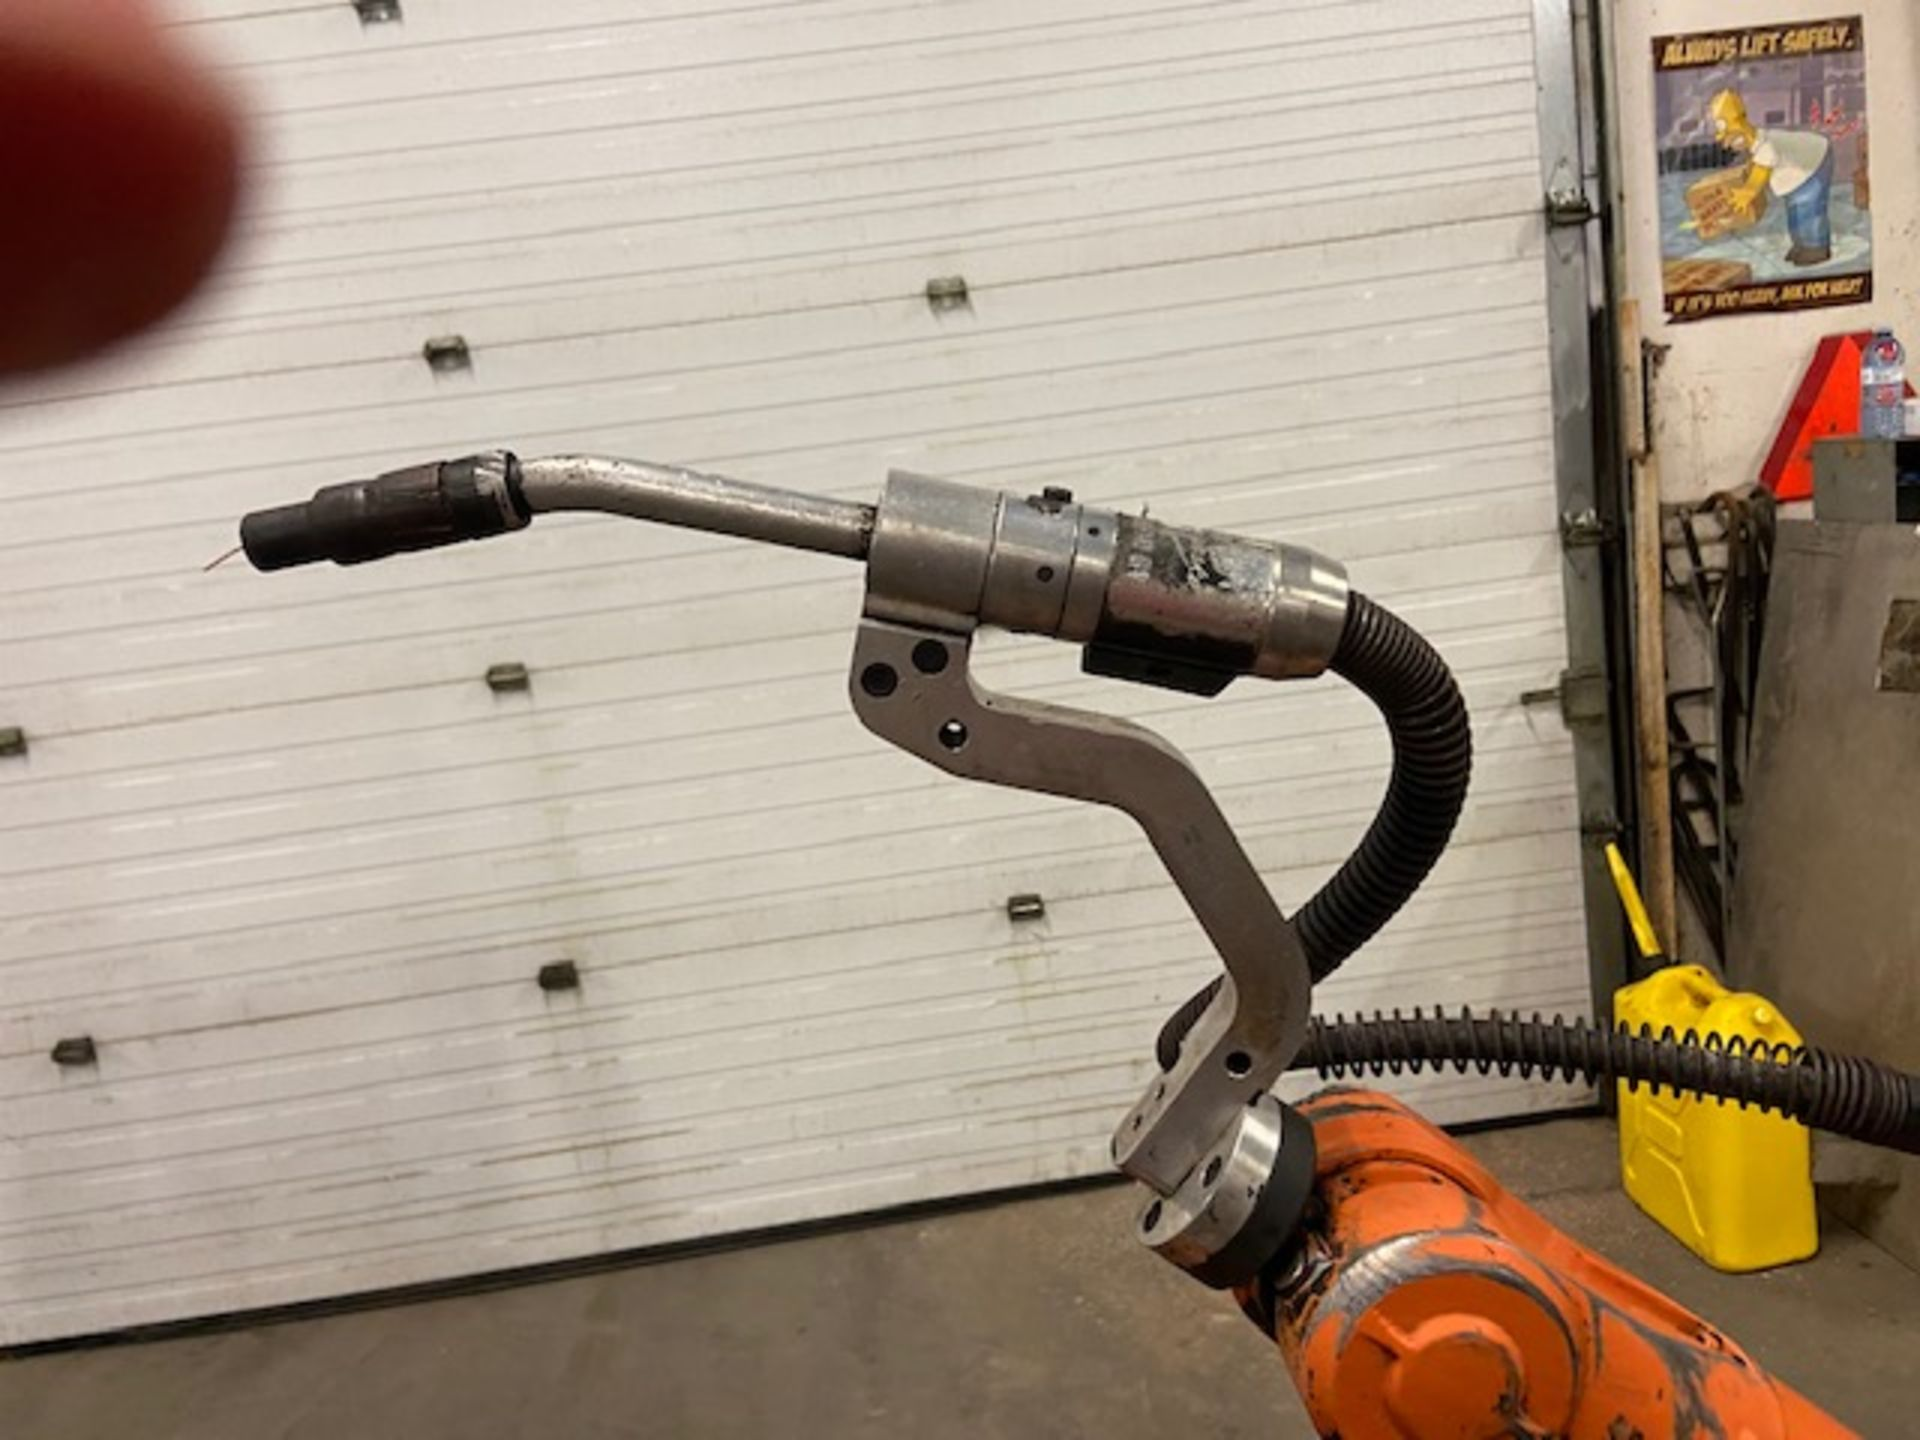 ABB IRB 2400 Robotic Weld Package w/ IRB2400 M2000 Controller, Miller Robotic Interface and Miller - Image 3 of 6